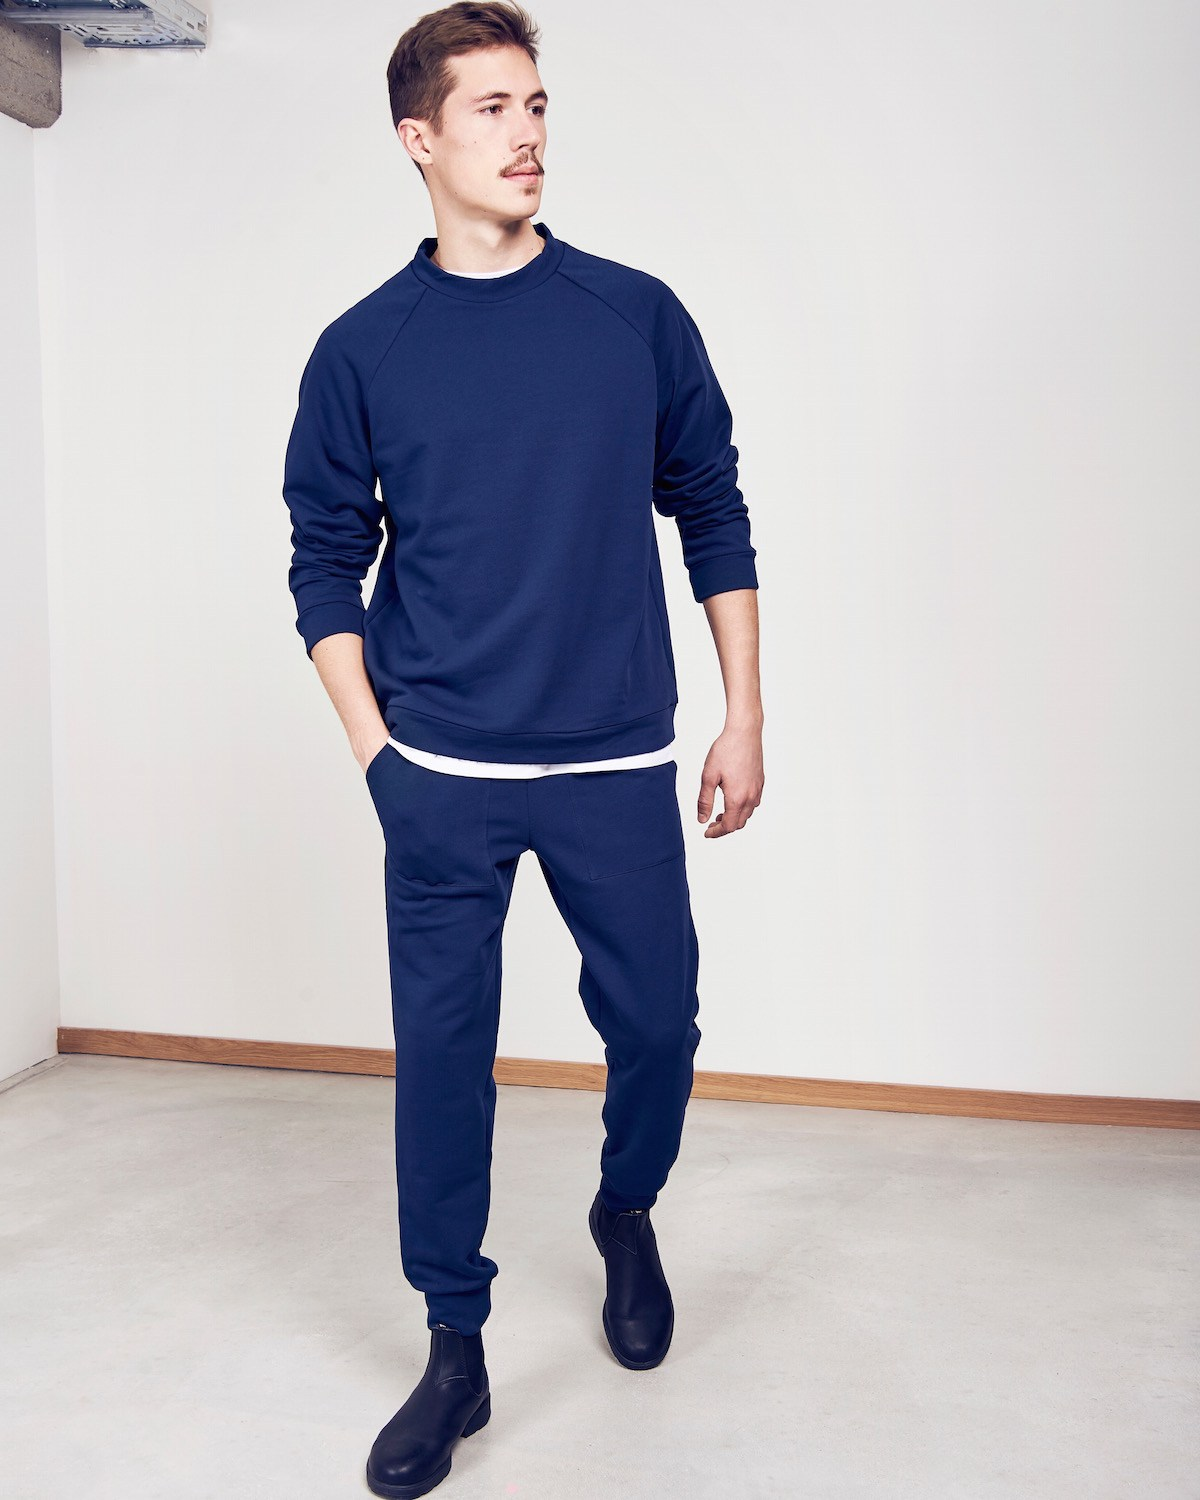 JAN 'N JUNE | Menswear | Neue Kollektion | Foto: JAN 'N JUNE | GROSS∆RTIG